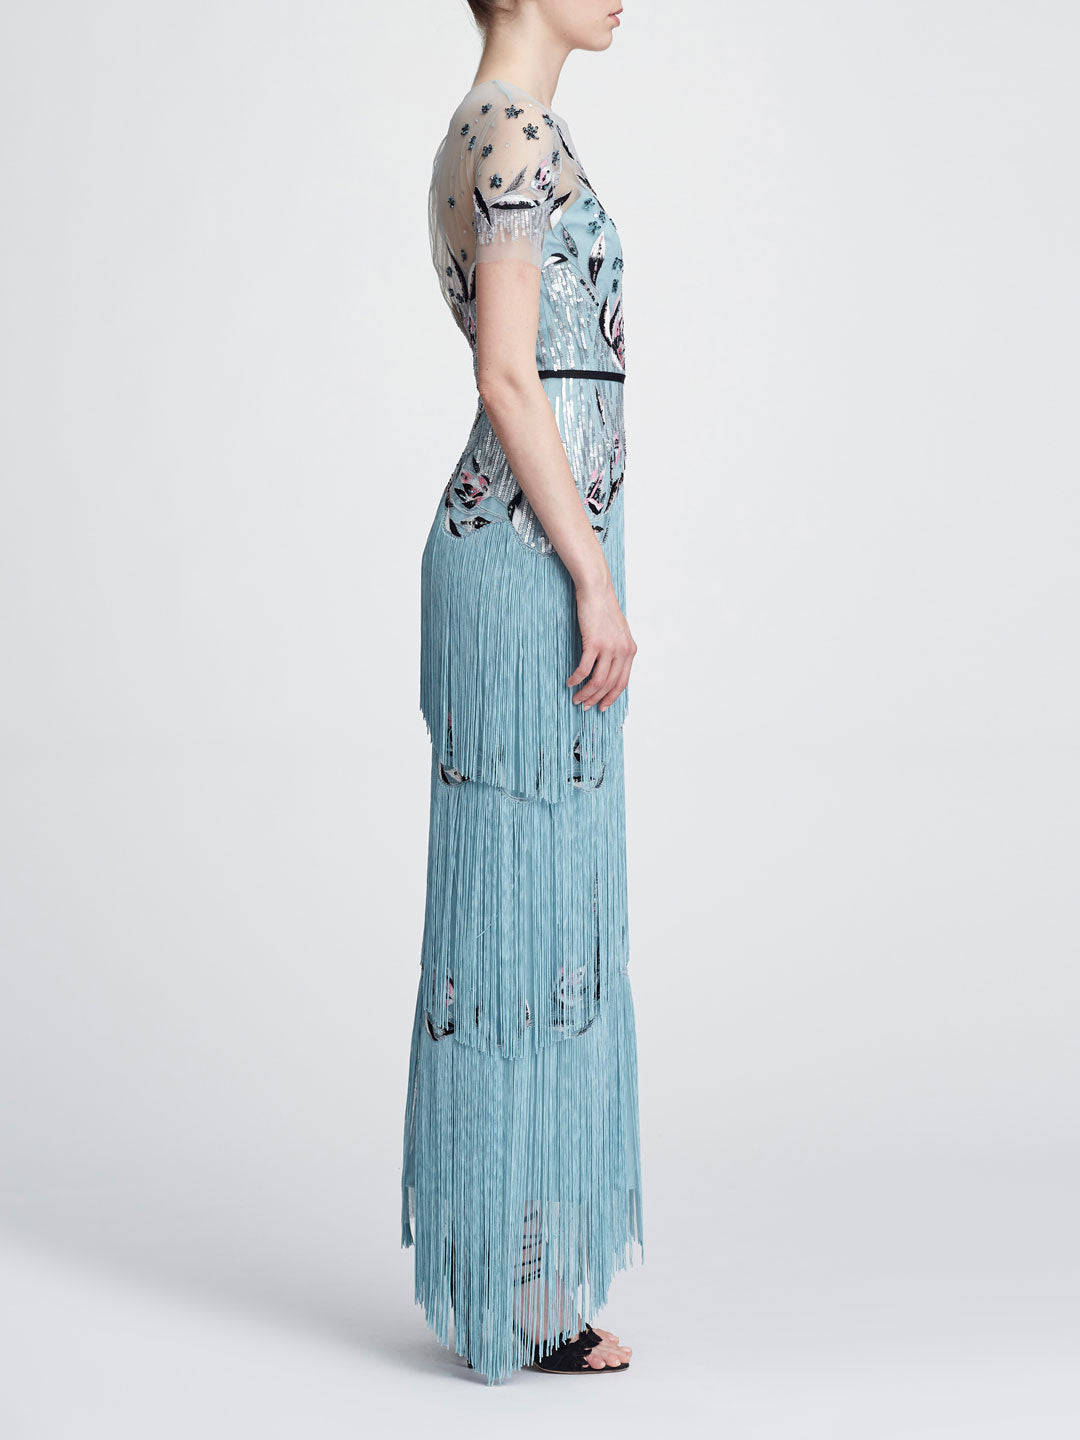 Short sleeve fringe gown